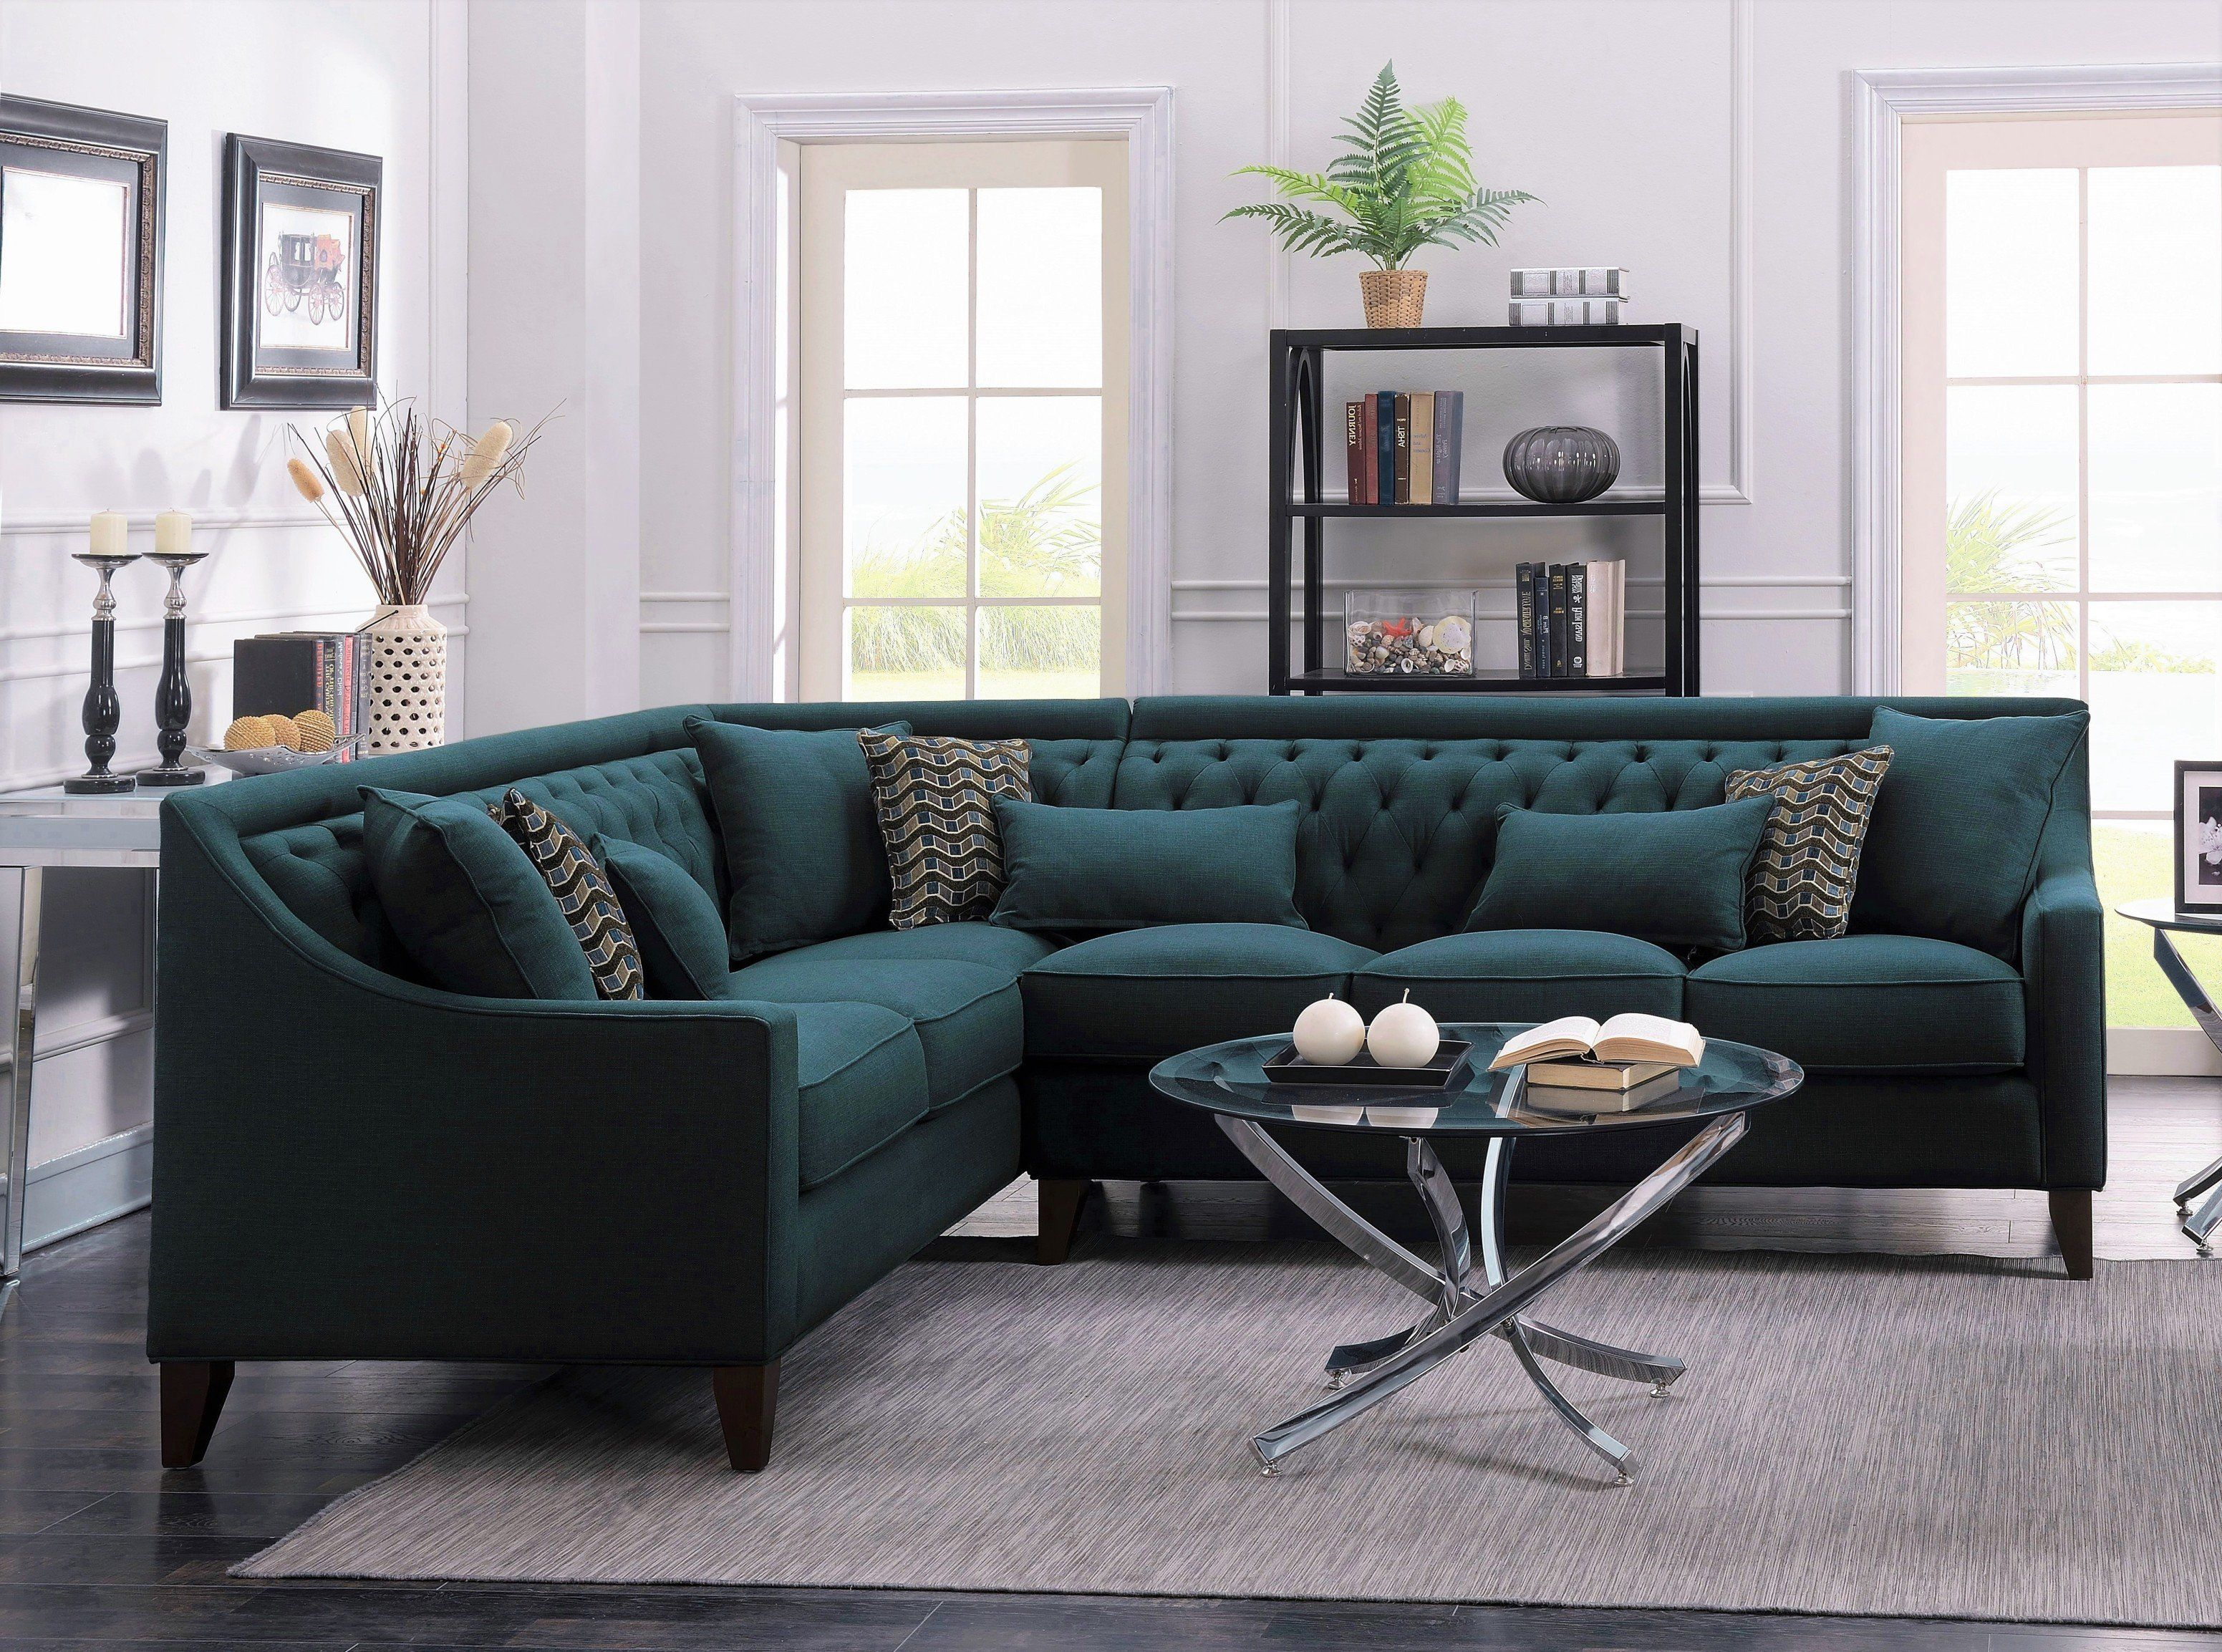 Iconic Home Aberdeen Linen Tufted Left Facing Sectional Sofa Teal Small Living Room Decor Sectional Sofa Grey Sectional Sofa